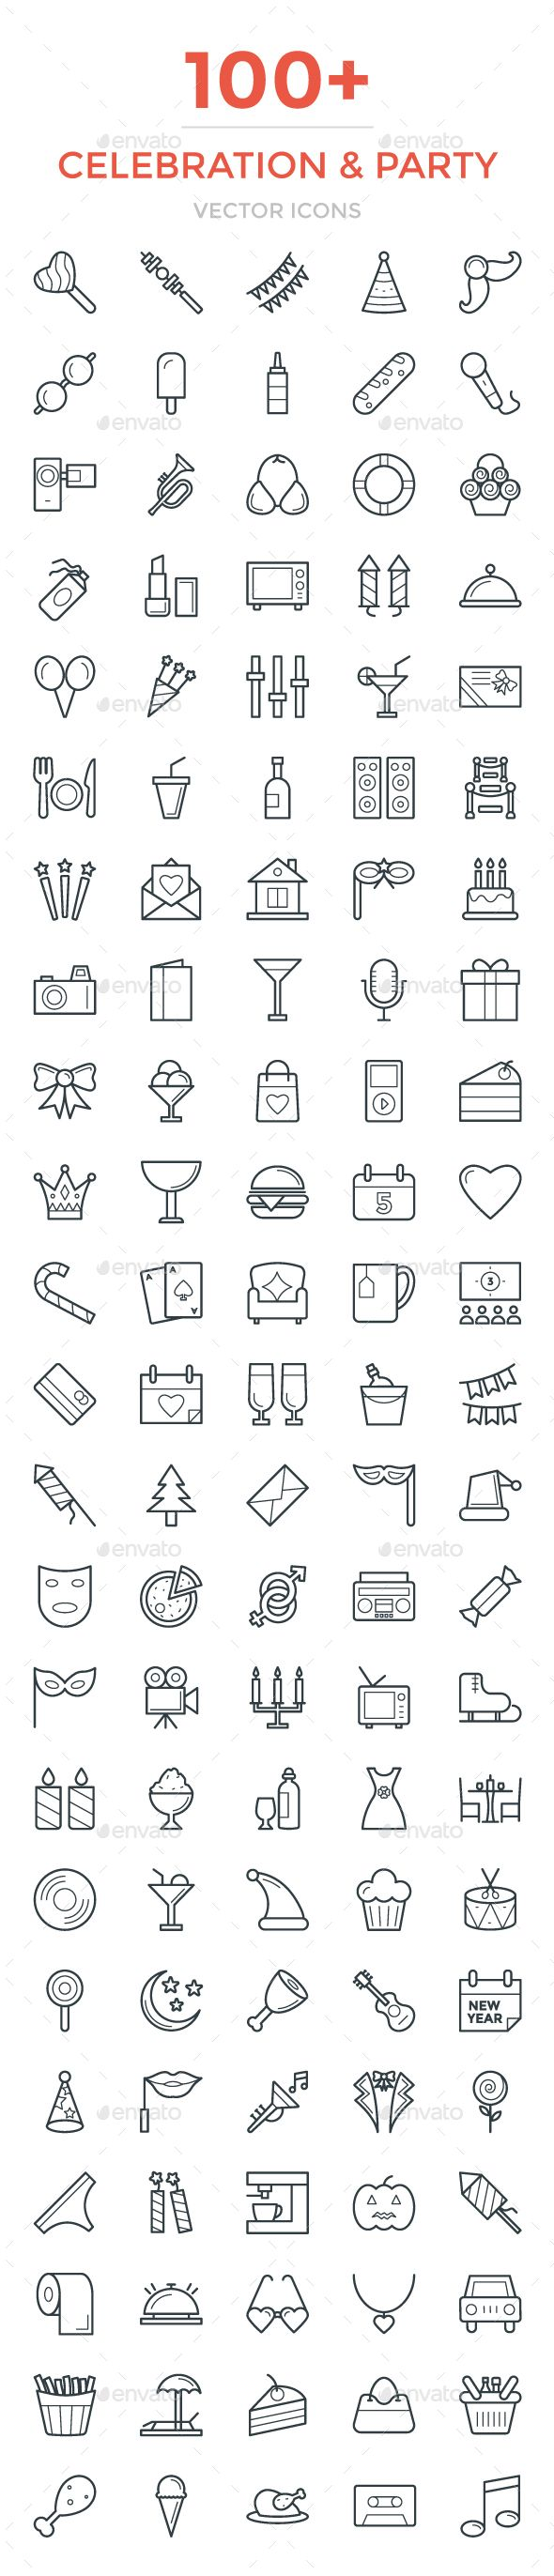 100+ Celebration and Party Icons. Download here: https://graphicriver.net/item/100-celebration-and-party-icons/17044578?ref=ksioks